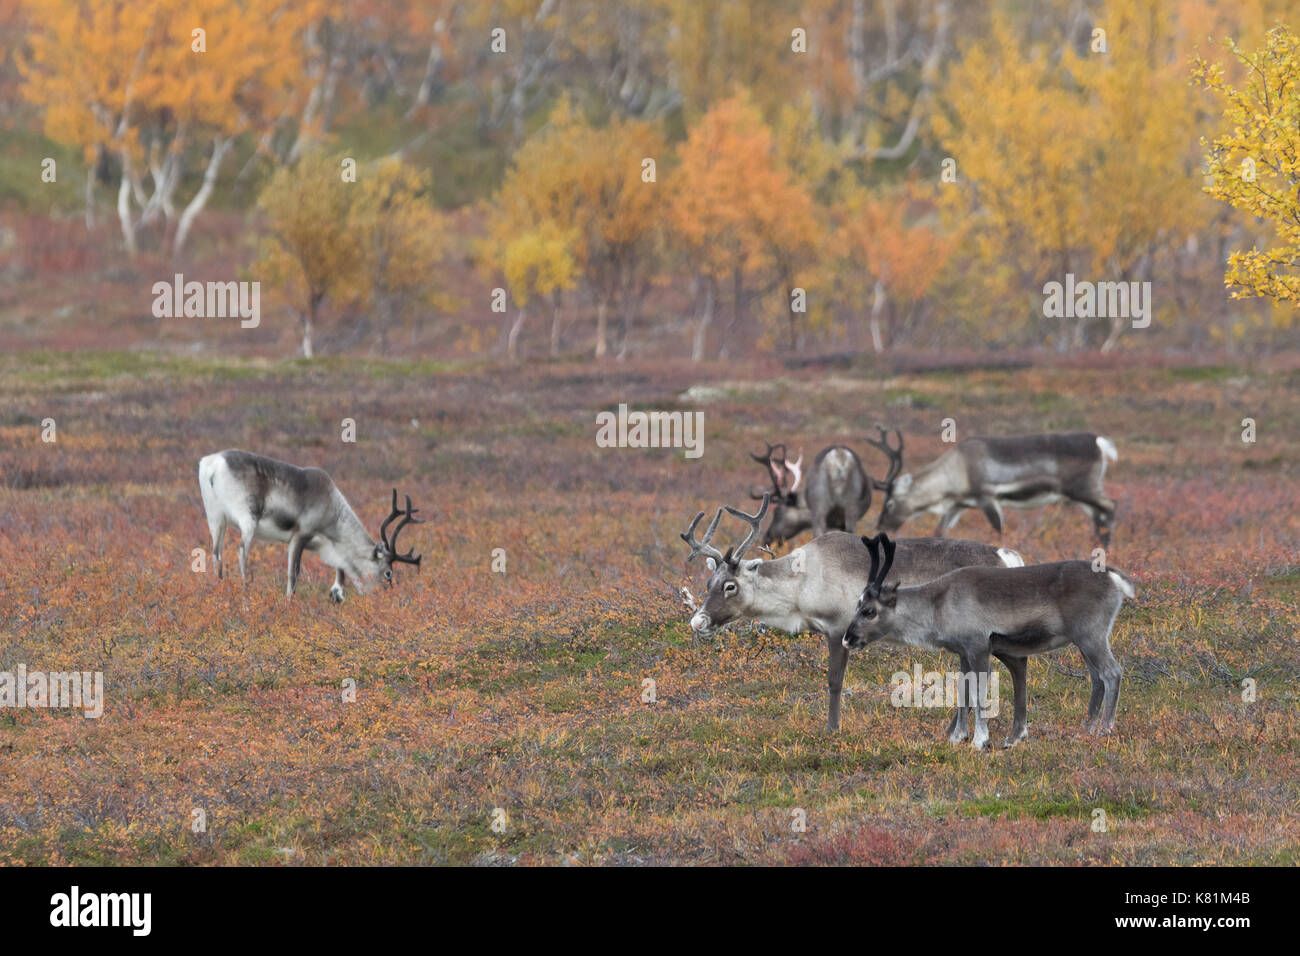 reindeers-at-the-mountain-in-finnmark-no